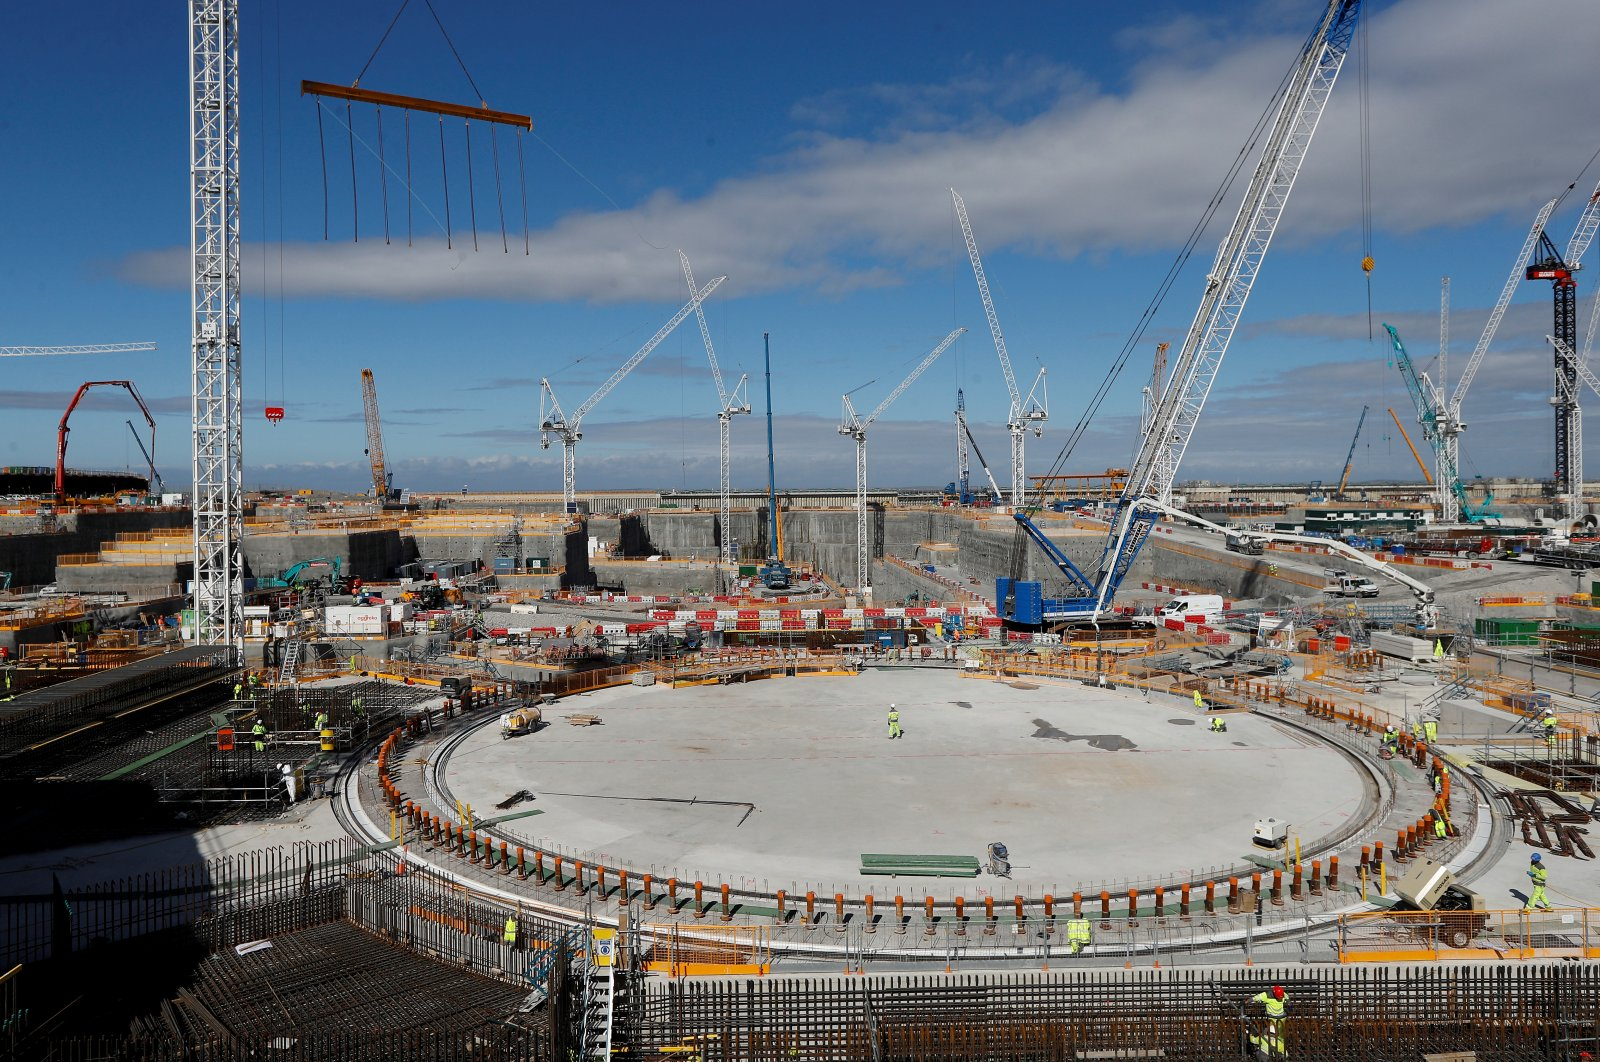 Workers at the nuclear reactor area under construction, are seen at Hinkley Point C nuclear power station site, near Bridgwater, Britain, September 12, 2019. (Reuters Photo)